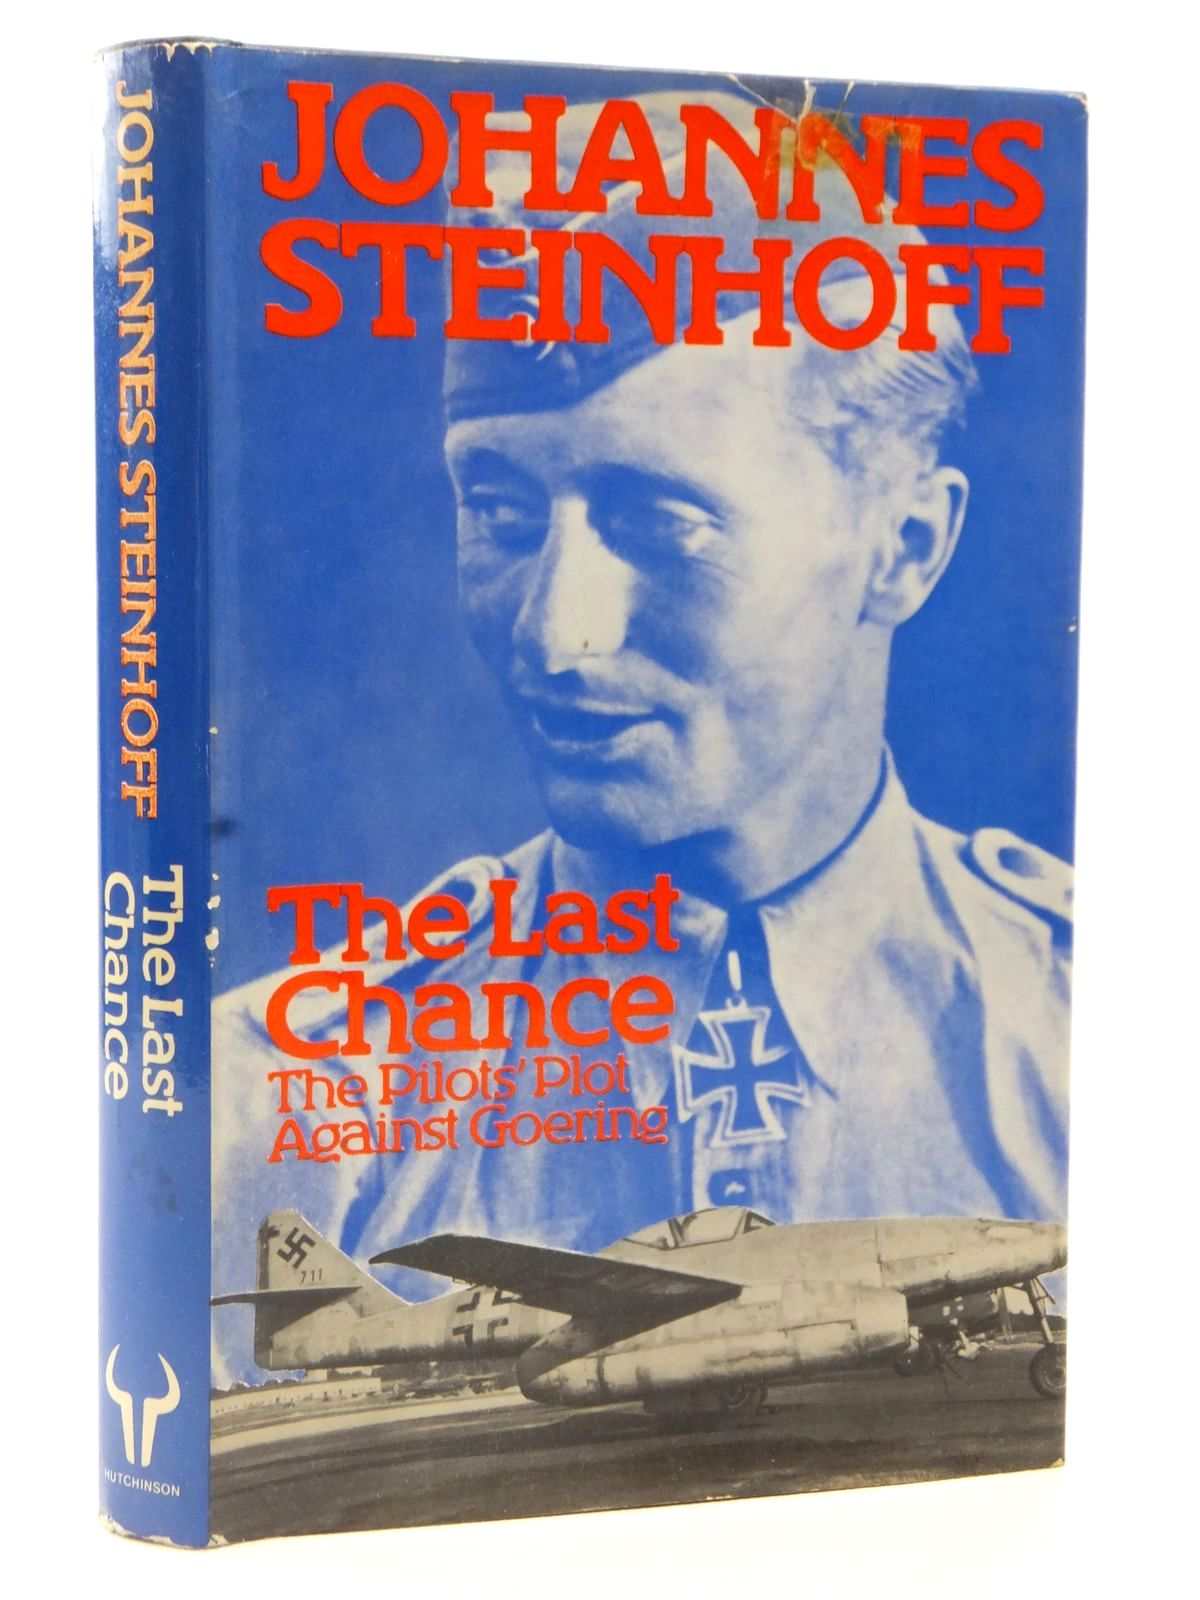 Photo of THE LAST CHANCE THE PILOTS' PLOT AGAINST GORING 1944-1945 written by Steinhoff, Johannes published by Hutchinson of London (STOCK CODE: 2122607)  for sale by Stella & Rose's Books